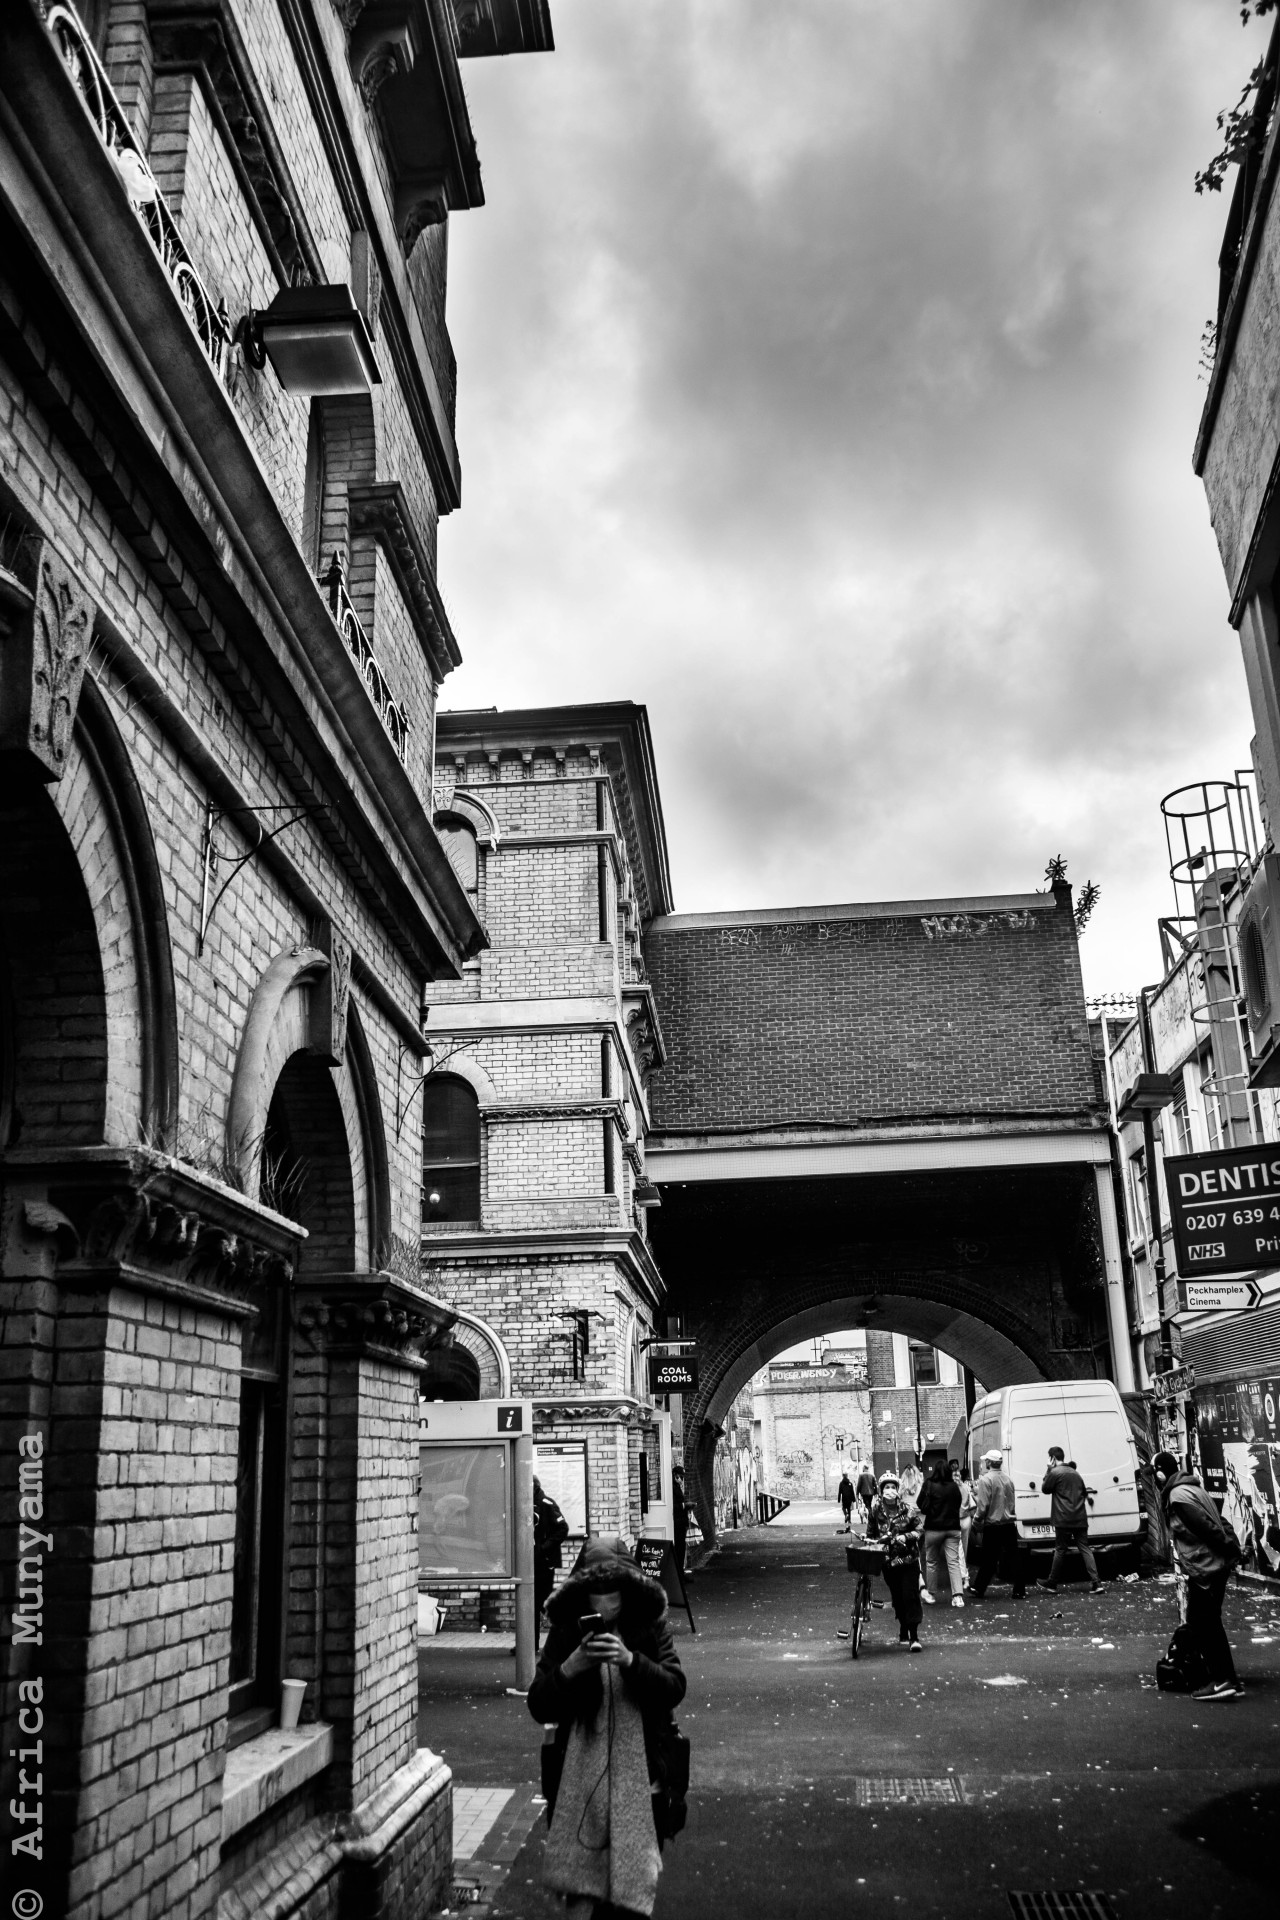 Don't look now. Approaching Peckham Rye Station #original photographers #photographers on tumblr #photography#photo#photooftheday#lensblr #photographers on lensblr #PWS #PWS - photos worth seeing #streetphotography#urban#architecture#people#city#cityscape#london#bnw#bnwphotography#bnw_society#bnwphotooftheday#bnw_photography#bnw_captures#monochrome#nikonphotography